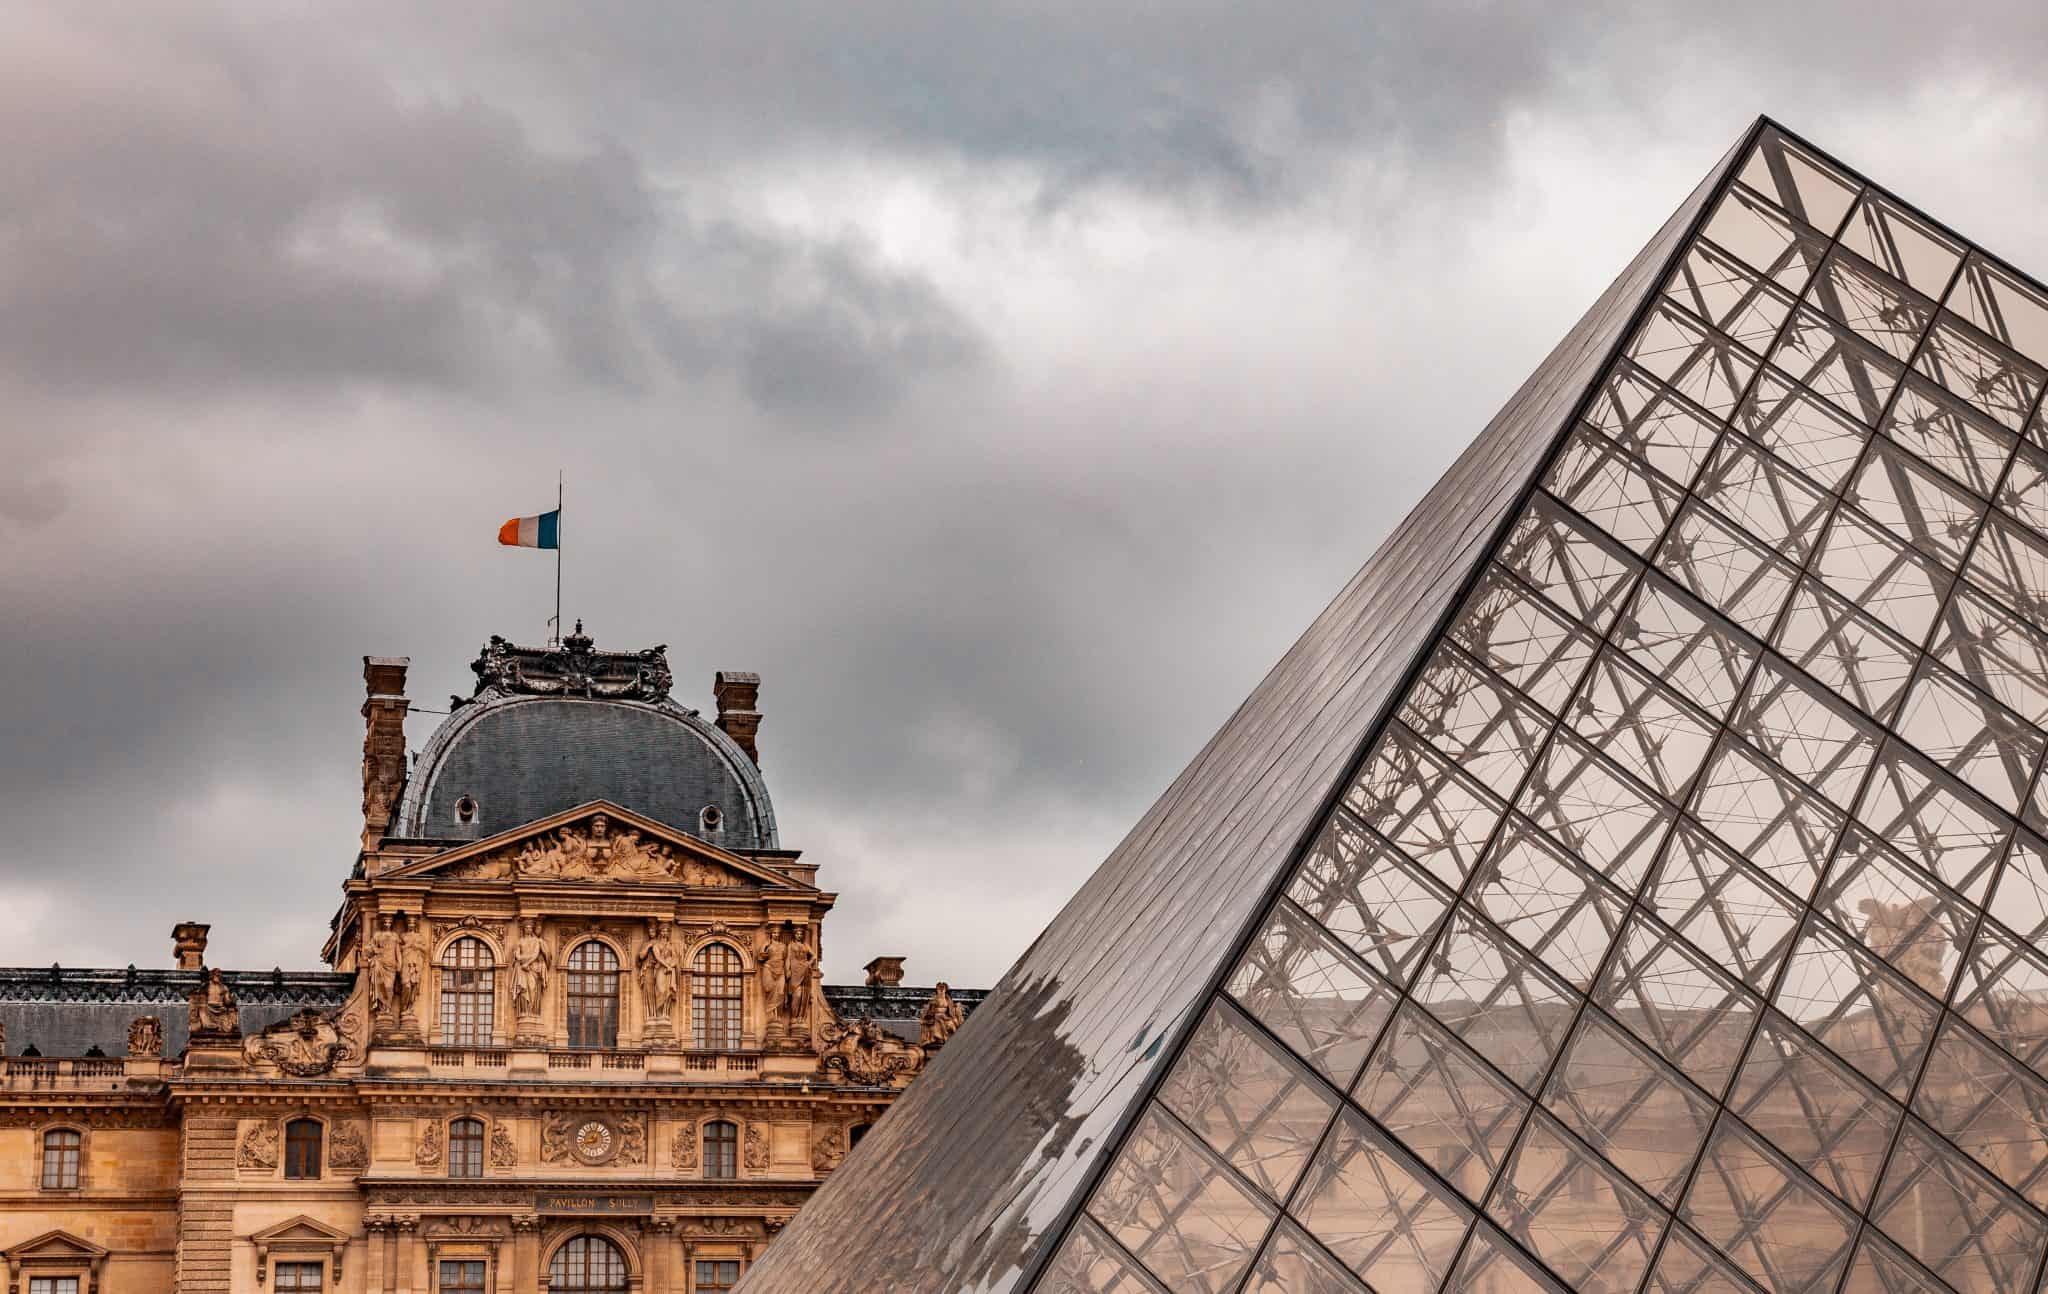 A beautiful view of the Louvre Pyramid in Paris